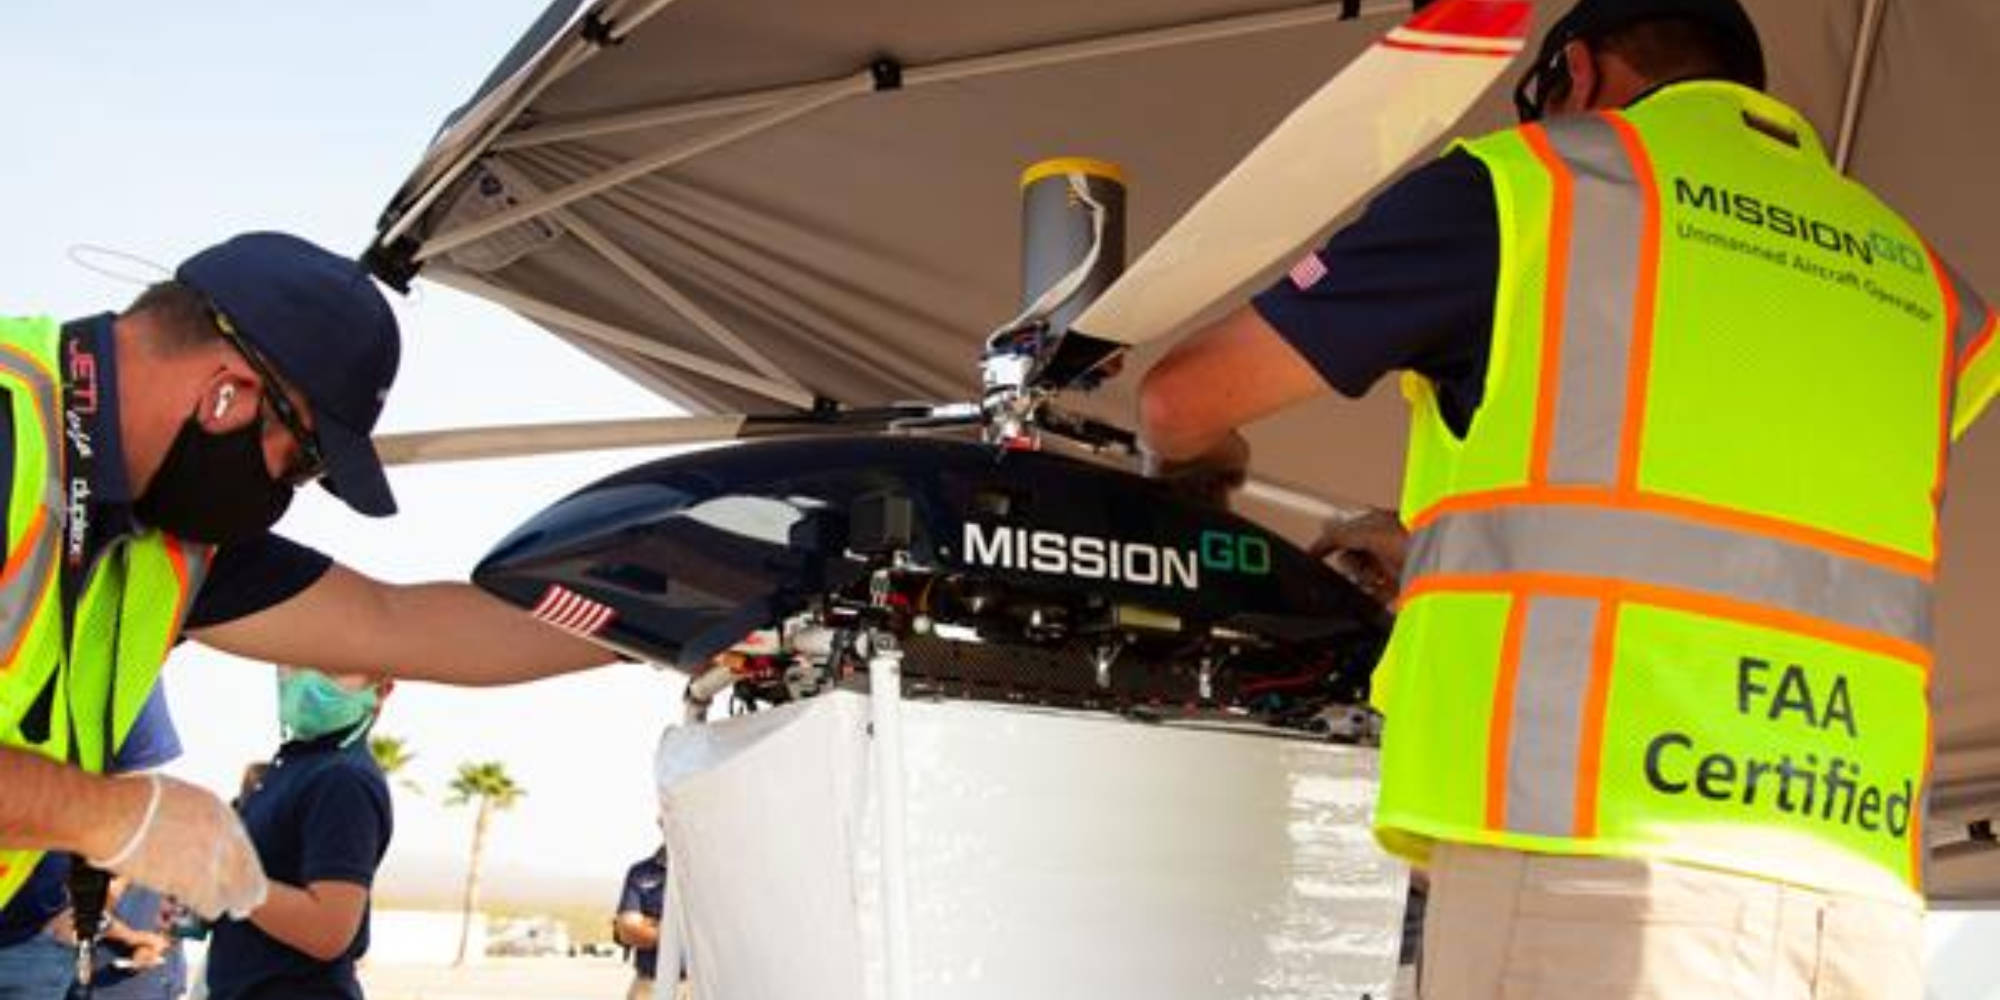 Drone solution provider MissionGO has completed the longest organ delivery by drone in Las Vegas last week with the Nevada Donor Network. The two test